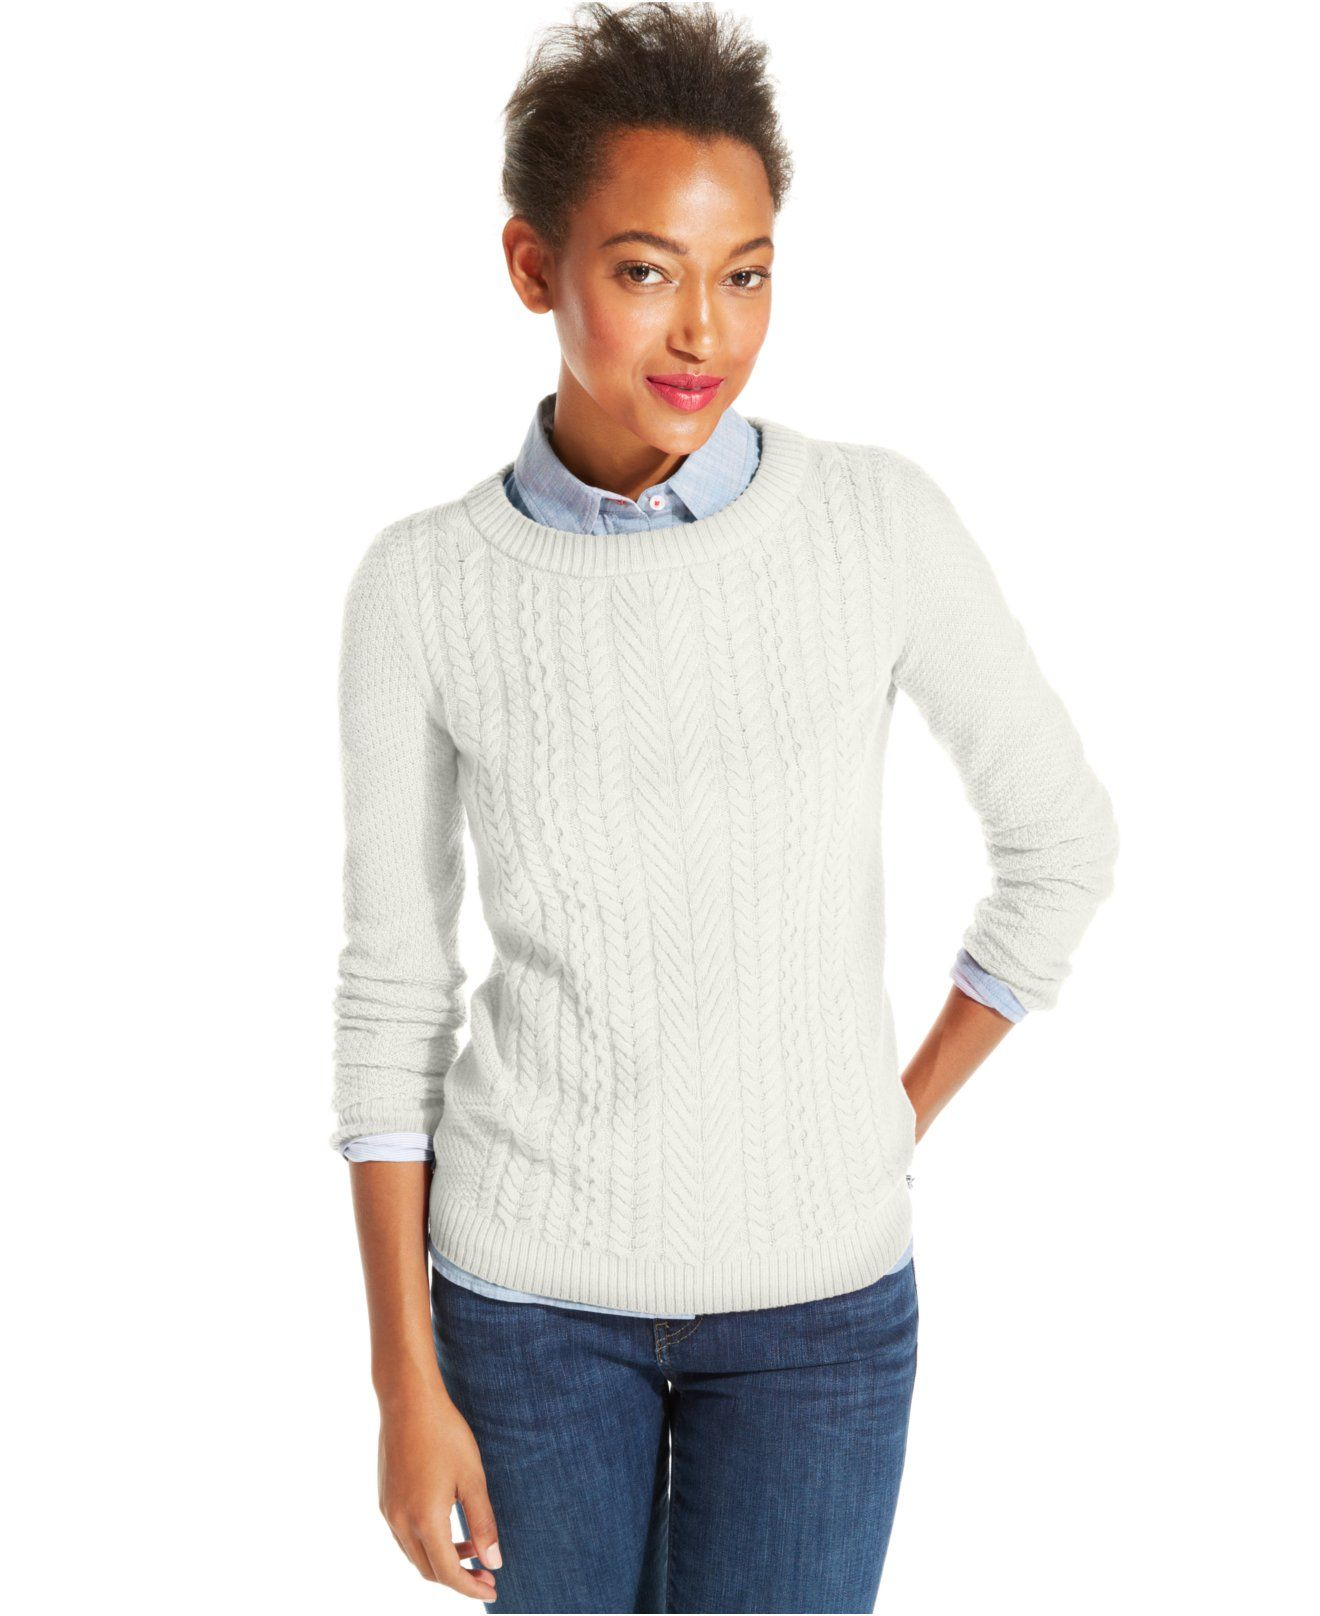 1aafc6094 Tommy Hilfiger Cable-Knit Crew-Neck Sweater - Sweaters - Women ...